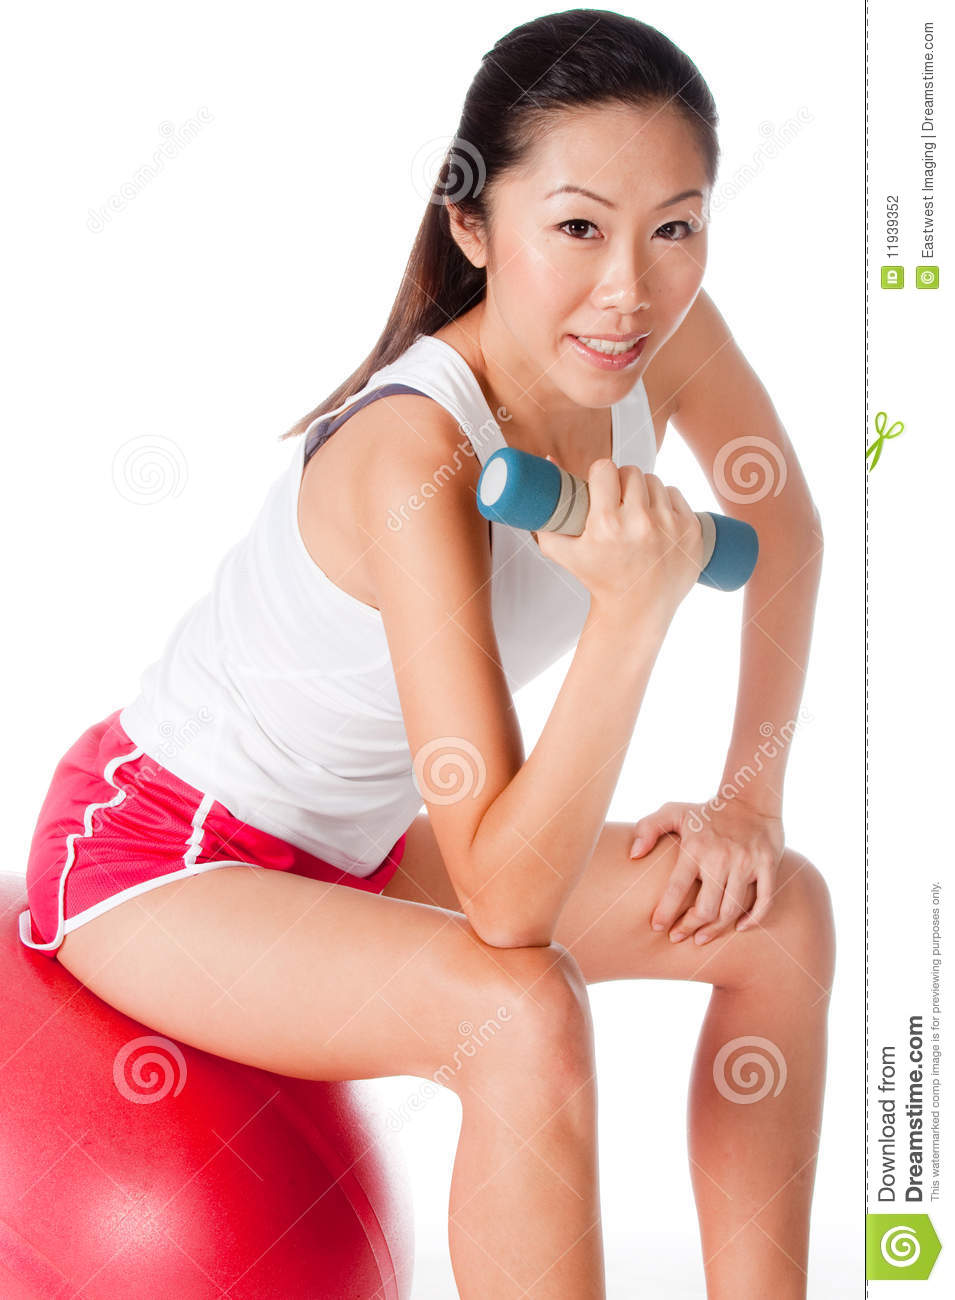 Fitness Woman Stock Photography Image 11939352